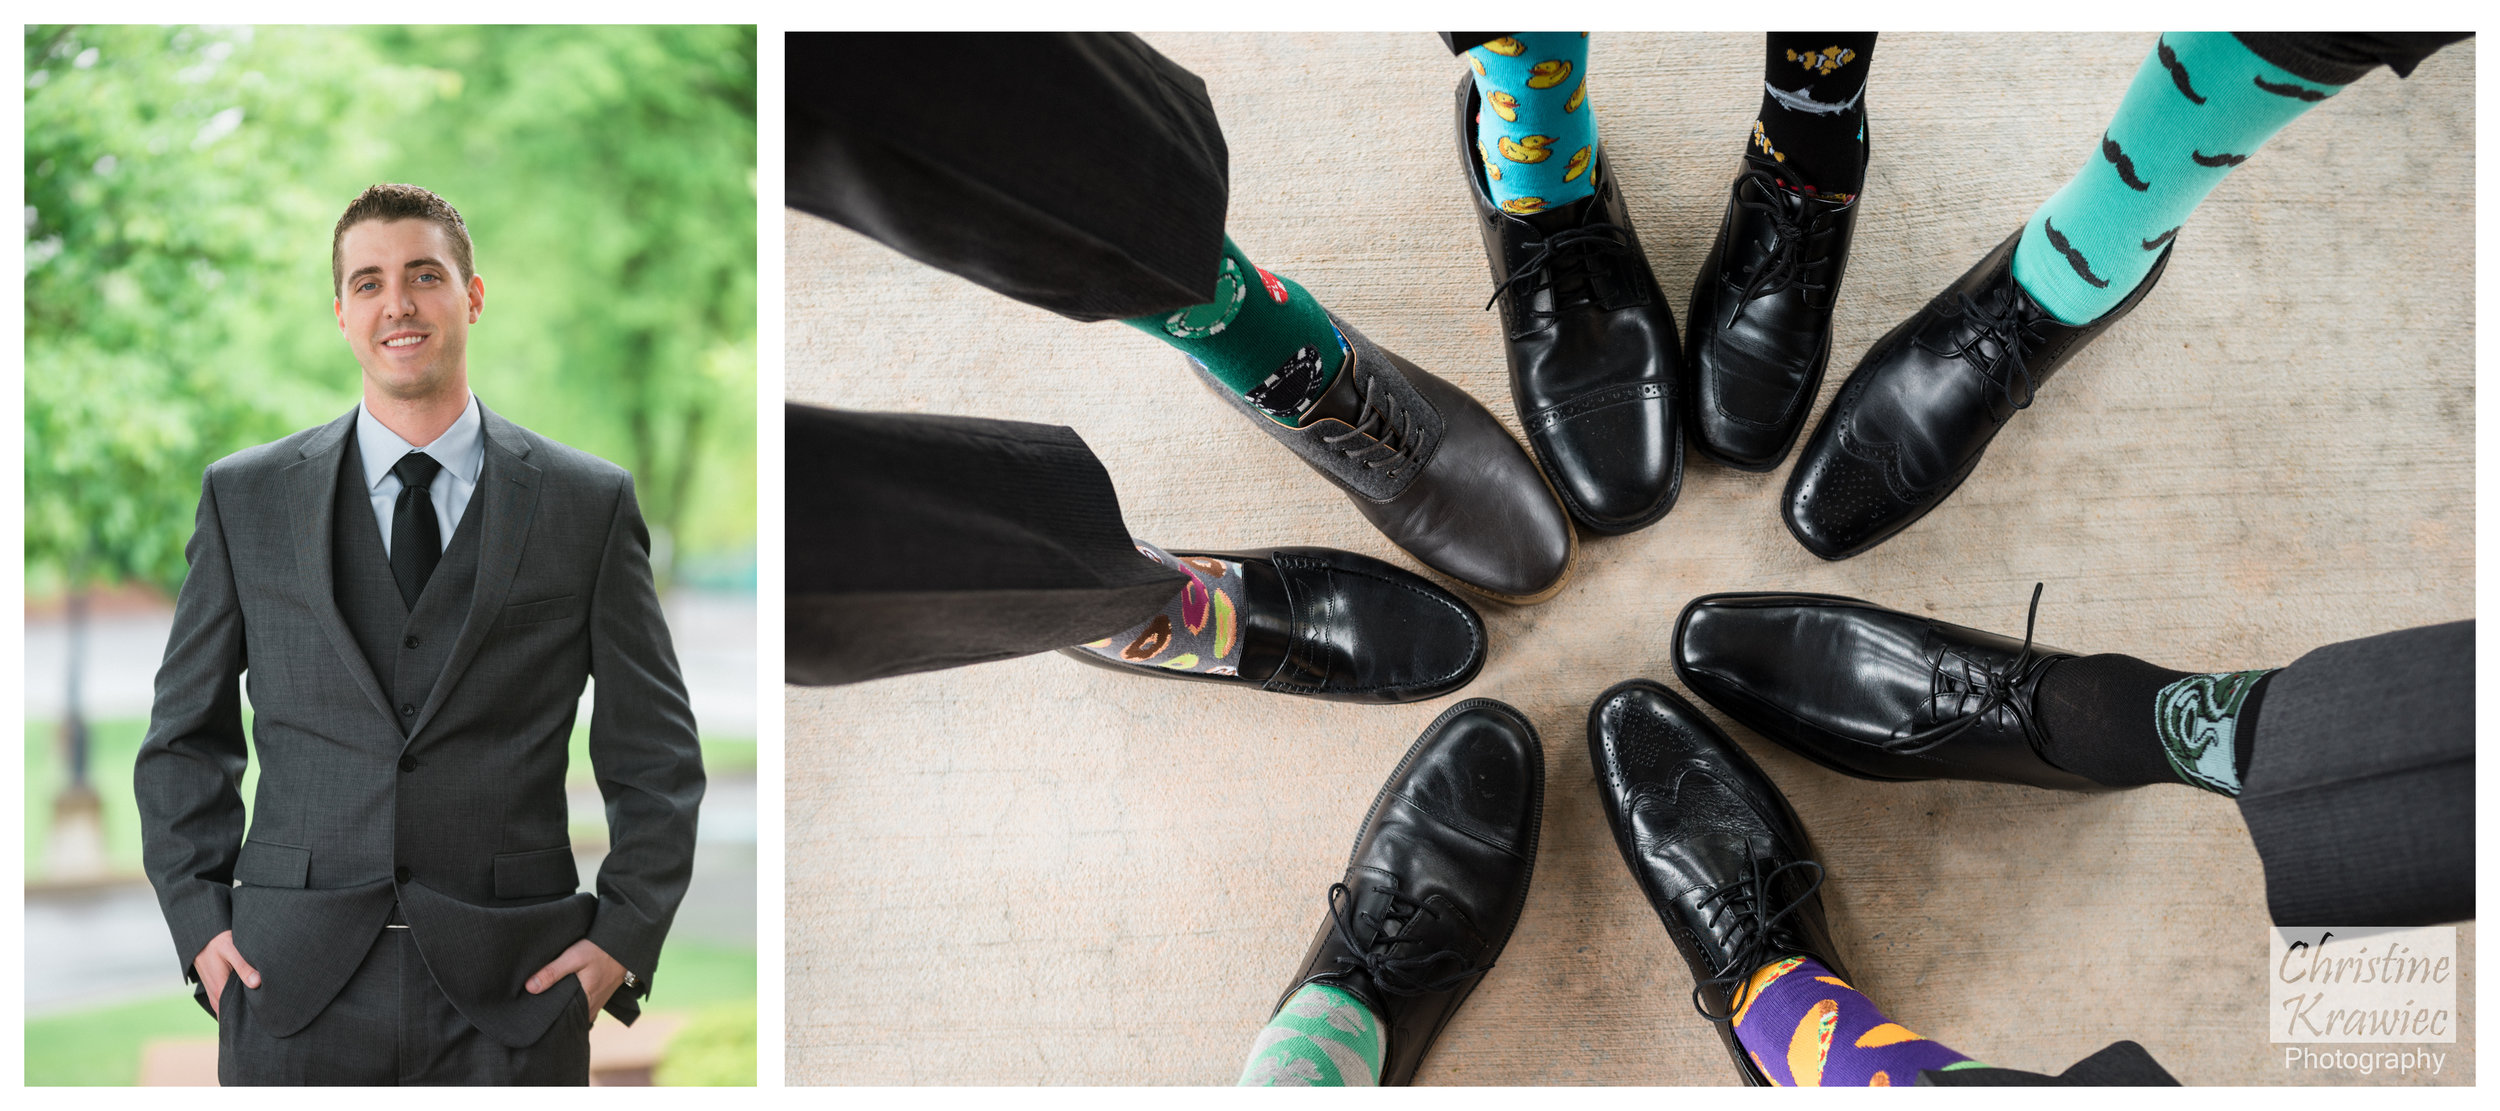 16 groomsmen-colorful-socks.jpg